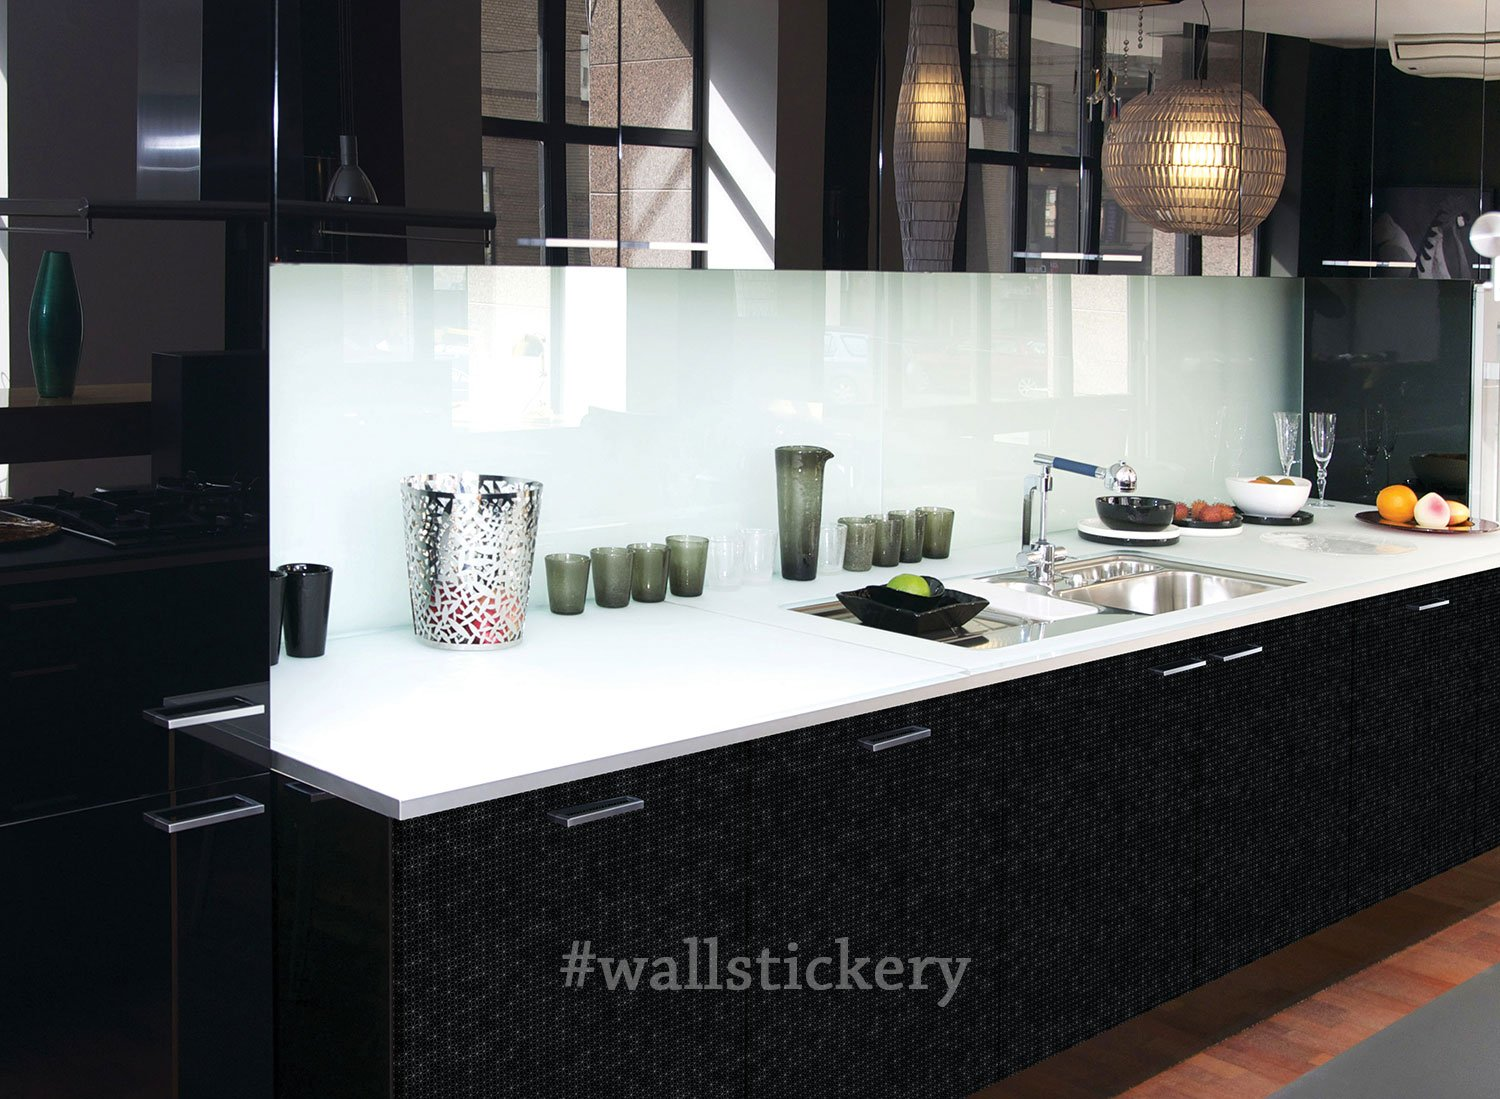 Wallstickery glossy black contact paper prepasted wallpaper for wall ...